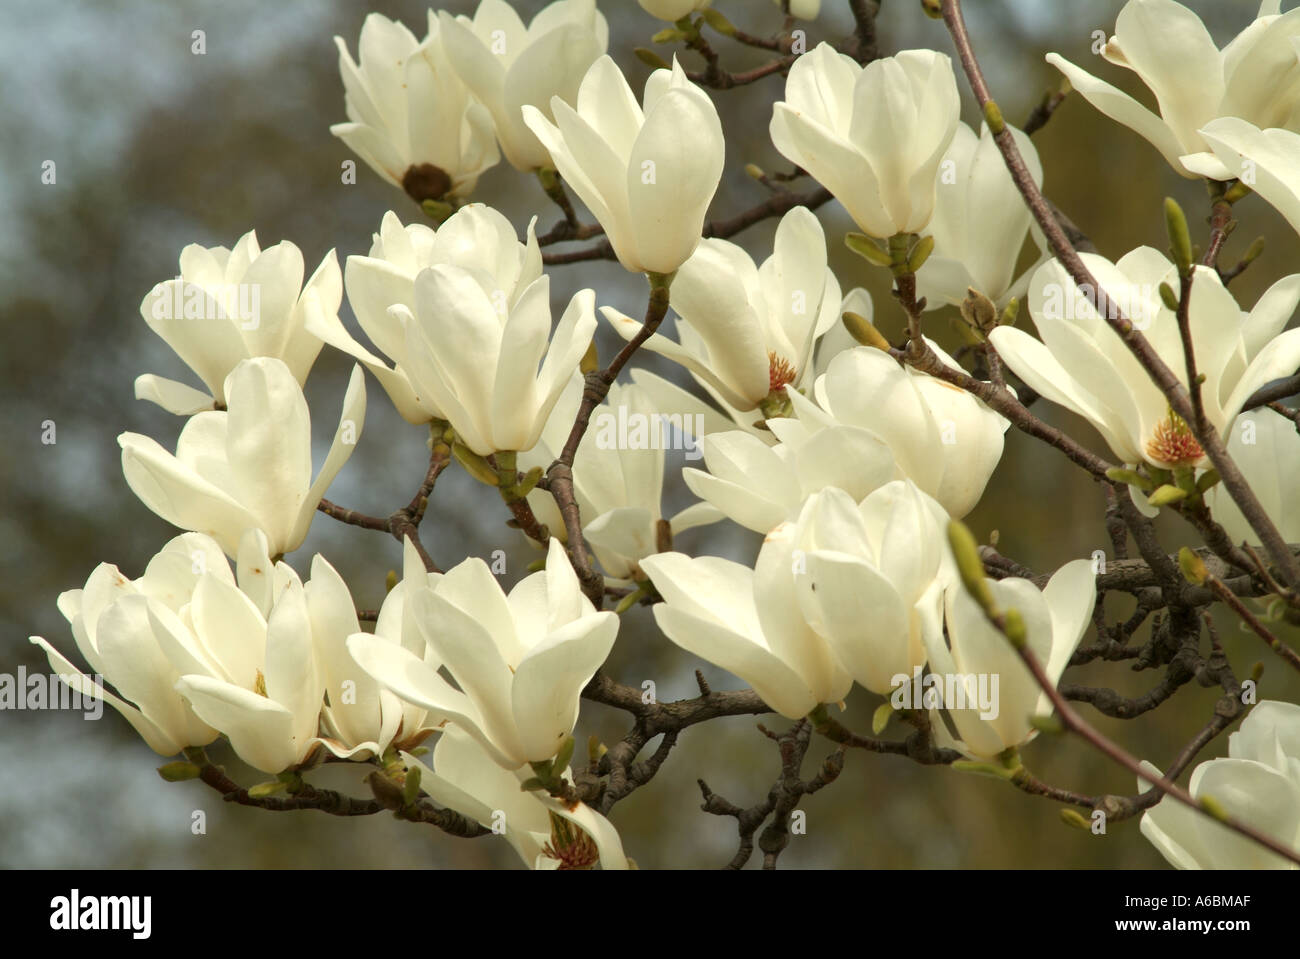 White magnolia flowers blooming magnolia denudata stock photo white magnolia flowers blooming magnolia denudata mightylinksfo